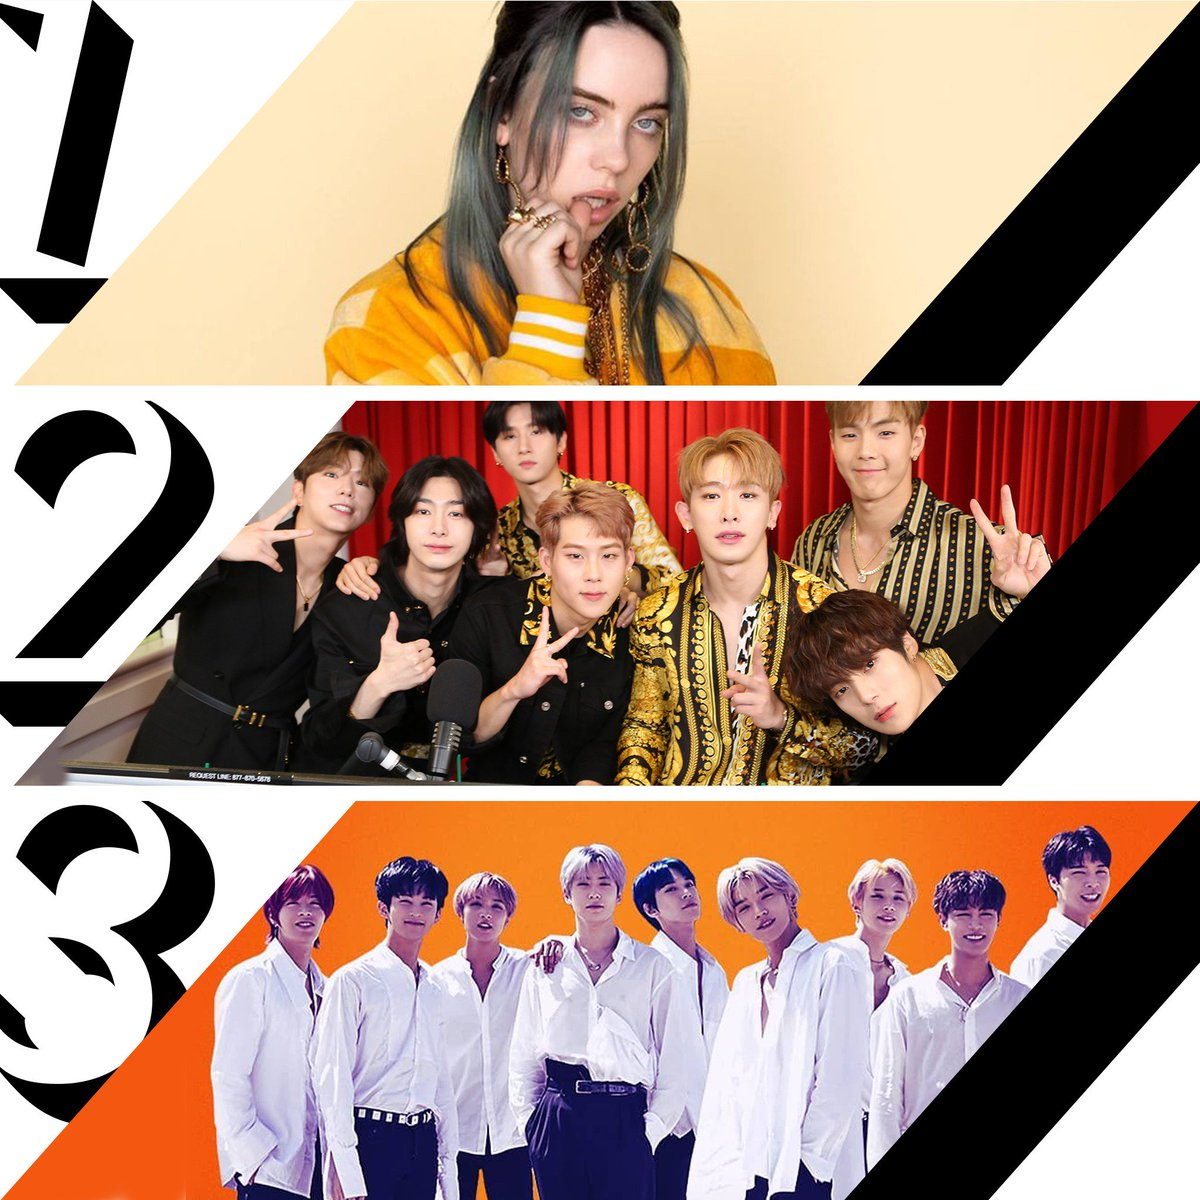 Here's Friday's #RDTop3! 1. @BillieEilish #badguy (with #JustinBieber) 2. @OfficialMonstaX #WHODOULOVE (f. @FrencHMonTanA) 3. @NCTsmtown_127 #HighwayToHeaven<br>http://pic.twitter.com/wOpq2MMire